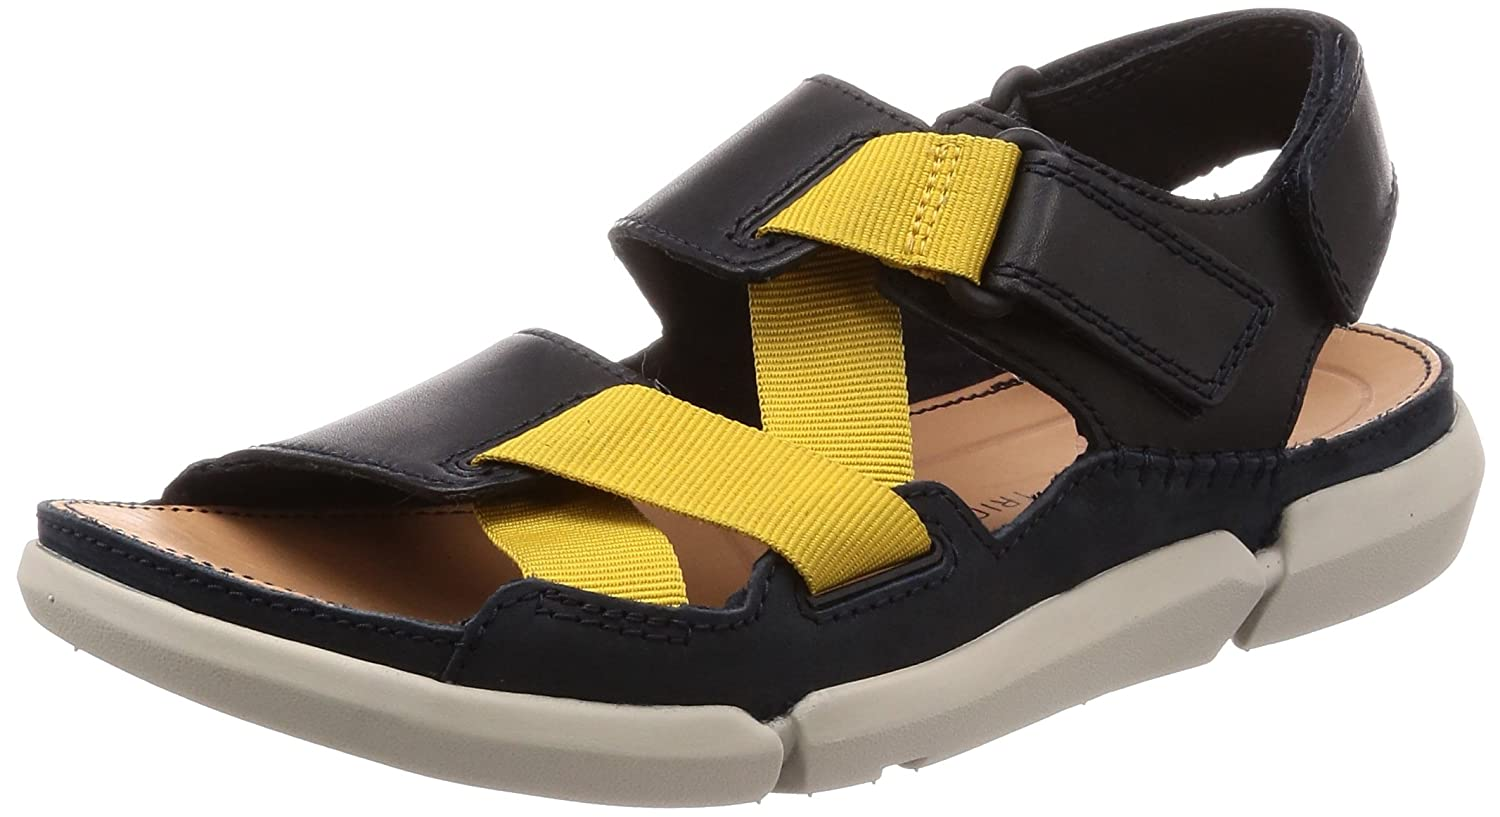 293a7e497b4c Clarks Men s Trisand Sun Blue Leather Sandals-8 UK India (42 EU)  (91261333027080)  Buy Online at Low Prices in India - Amazon.in